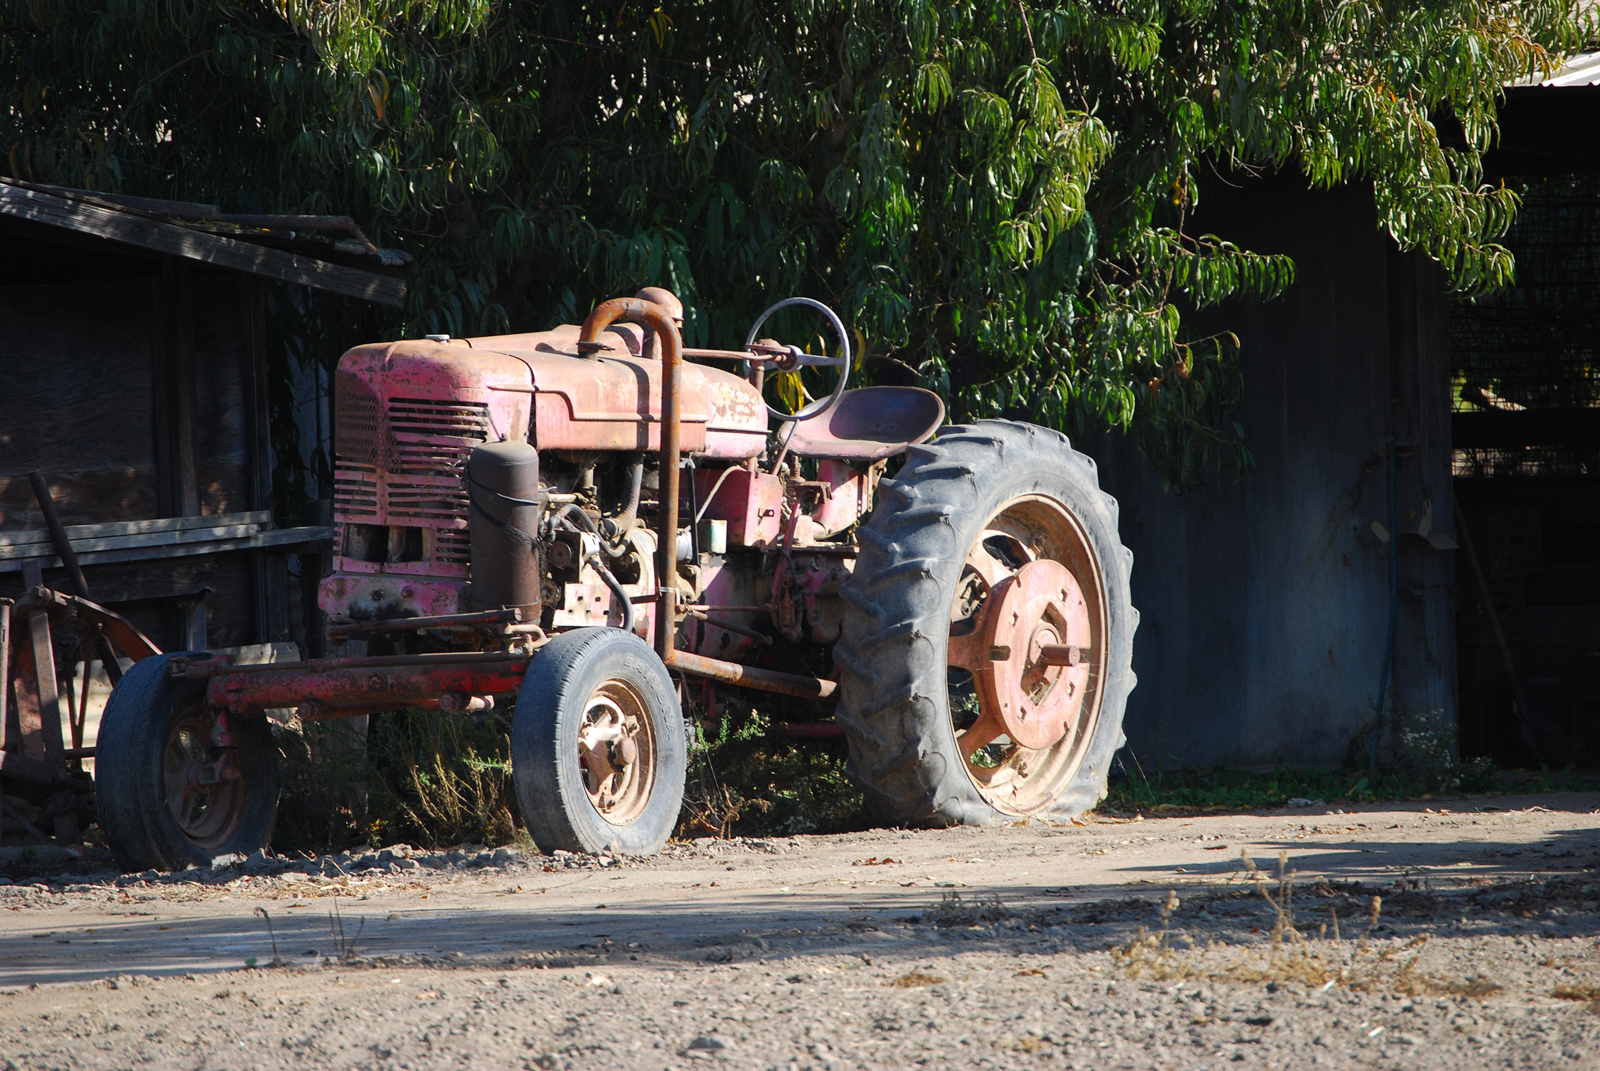 Forgotten Workhorse, Old, Rusted, Tractor, History, HQ Photo